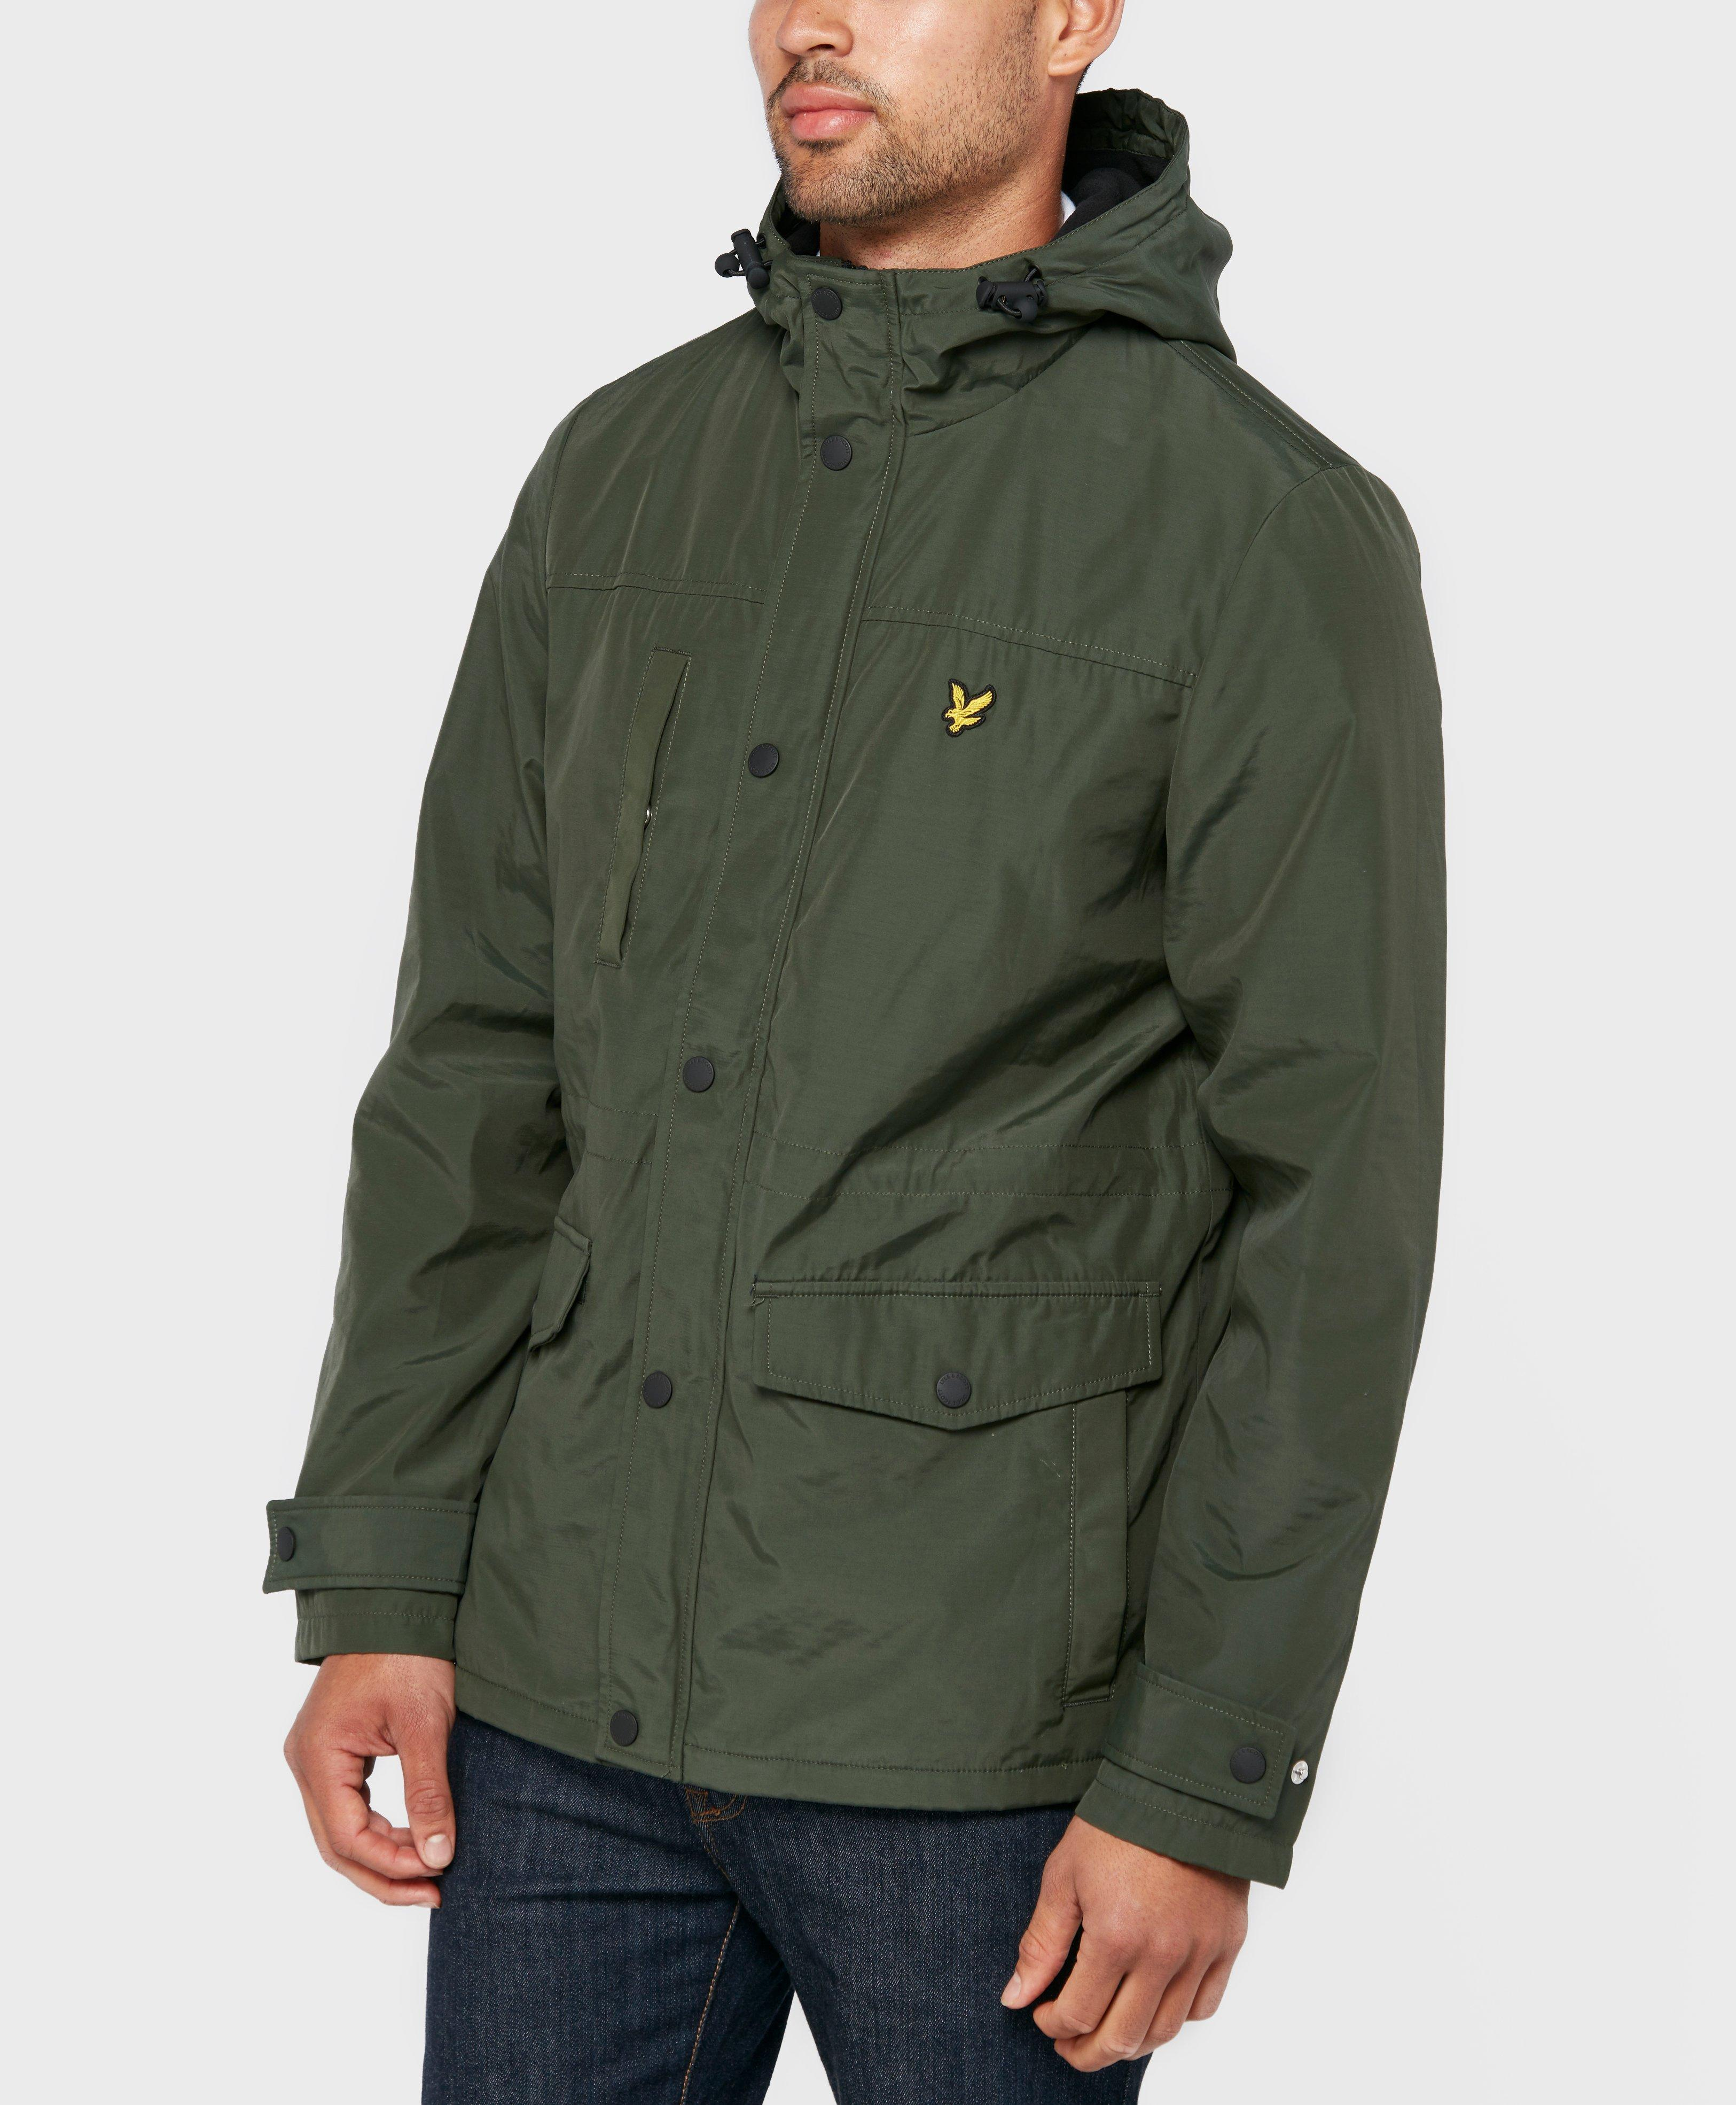 lyle scott fleece line lightweight jacket in green for men lyst. Black Bedroom Furniture Sets. Home Design Ideas